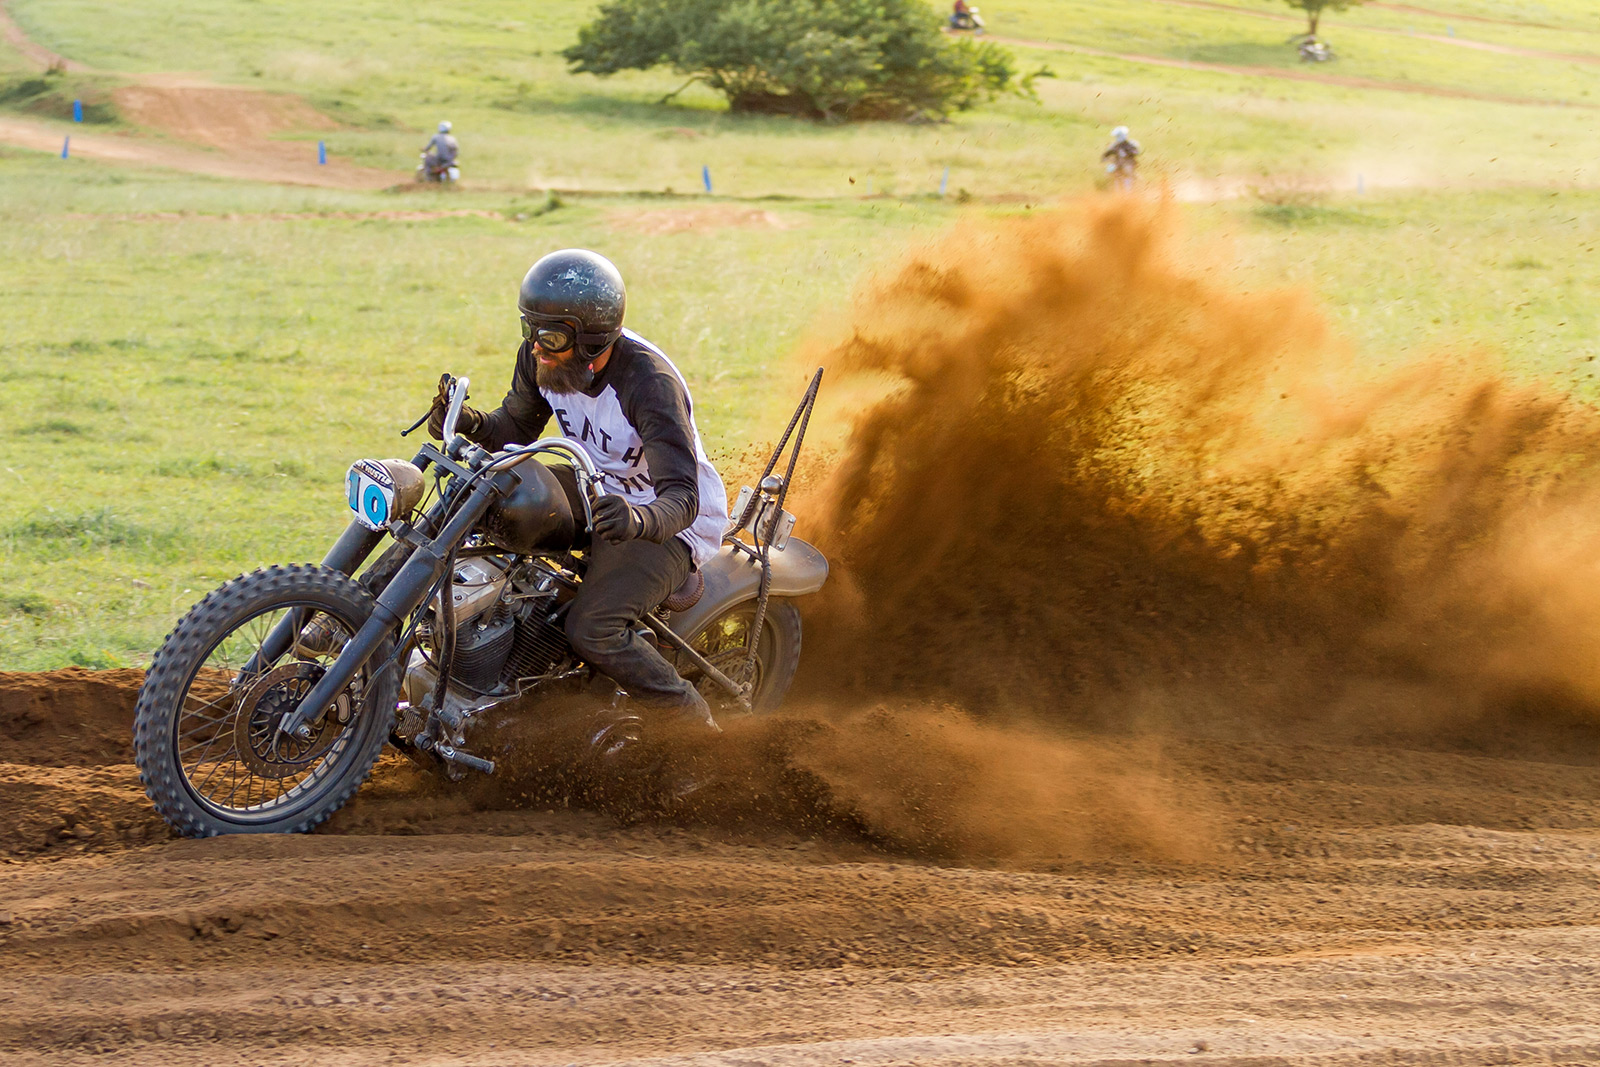 """Jake """"Valley Rat"""" Burn hammers his rigid framed Harley chopper through a turn. Photo:              Joe Sheppard       Normal   0           false   false   false     EN-US   X-NONE   X-NONE                                                                                                                                                                                                                                                                                                                                                                                                                                                                                                                                                                                                                                                                                                                                                                                                                                                                     /* Style Definitions */  table.MsoNormalTable {mso-style-name:""""Table Normal""""; mso-tstyle-rowband-size:0; mso-tstyle-colband-size:0; mso-style-noshow:yes; mso-style-priority:99; mso-style-parent:""""""""; mso-padding-alt:0in 5.4pt 0in 5.4pt; mso-para-margin:0in; mso-para-margin-bottom:.0001pt; mso-pagination:widow-orphan; font-size:11.0pt; font-family:""""Calibri"""",sans-serif; mso-ascii-font-family:Calibri; mso-ascii-theme-font:minor-latin; mso-hansi-font-family:Calibri; mso-hansi-theme-font:minor-latin; mso-bidi-font-family:""""Times New Roman""""; mso-bidi-theme-font:minor-bidi;}           Normal   0           false   false   false     EN-US   JA   X-NONE                                                                                                                                                                                                                                                                                                                                       """